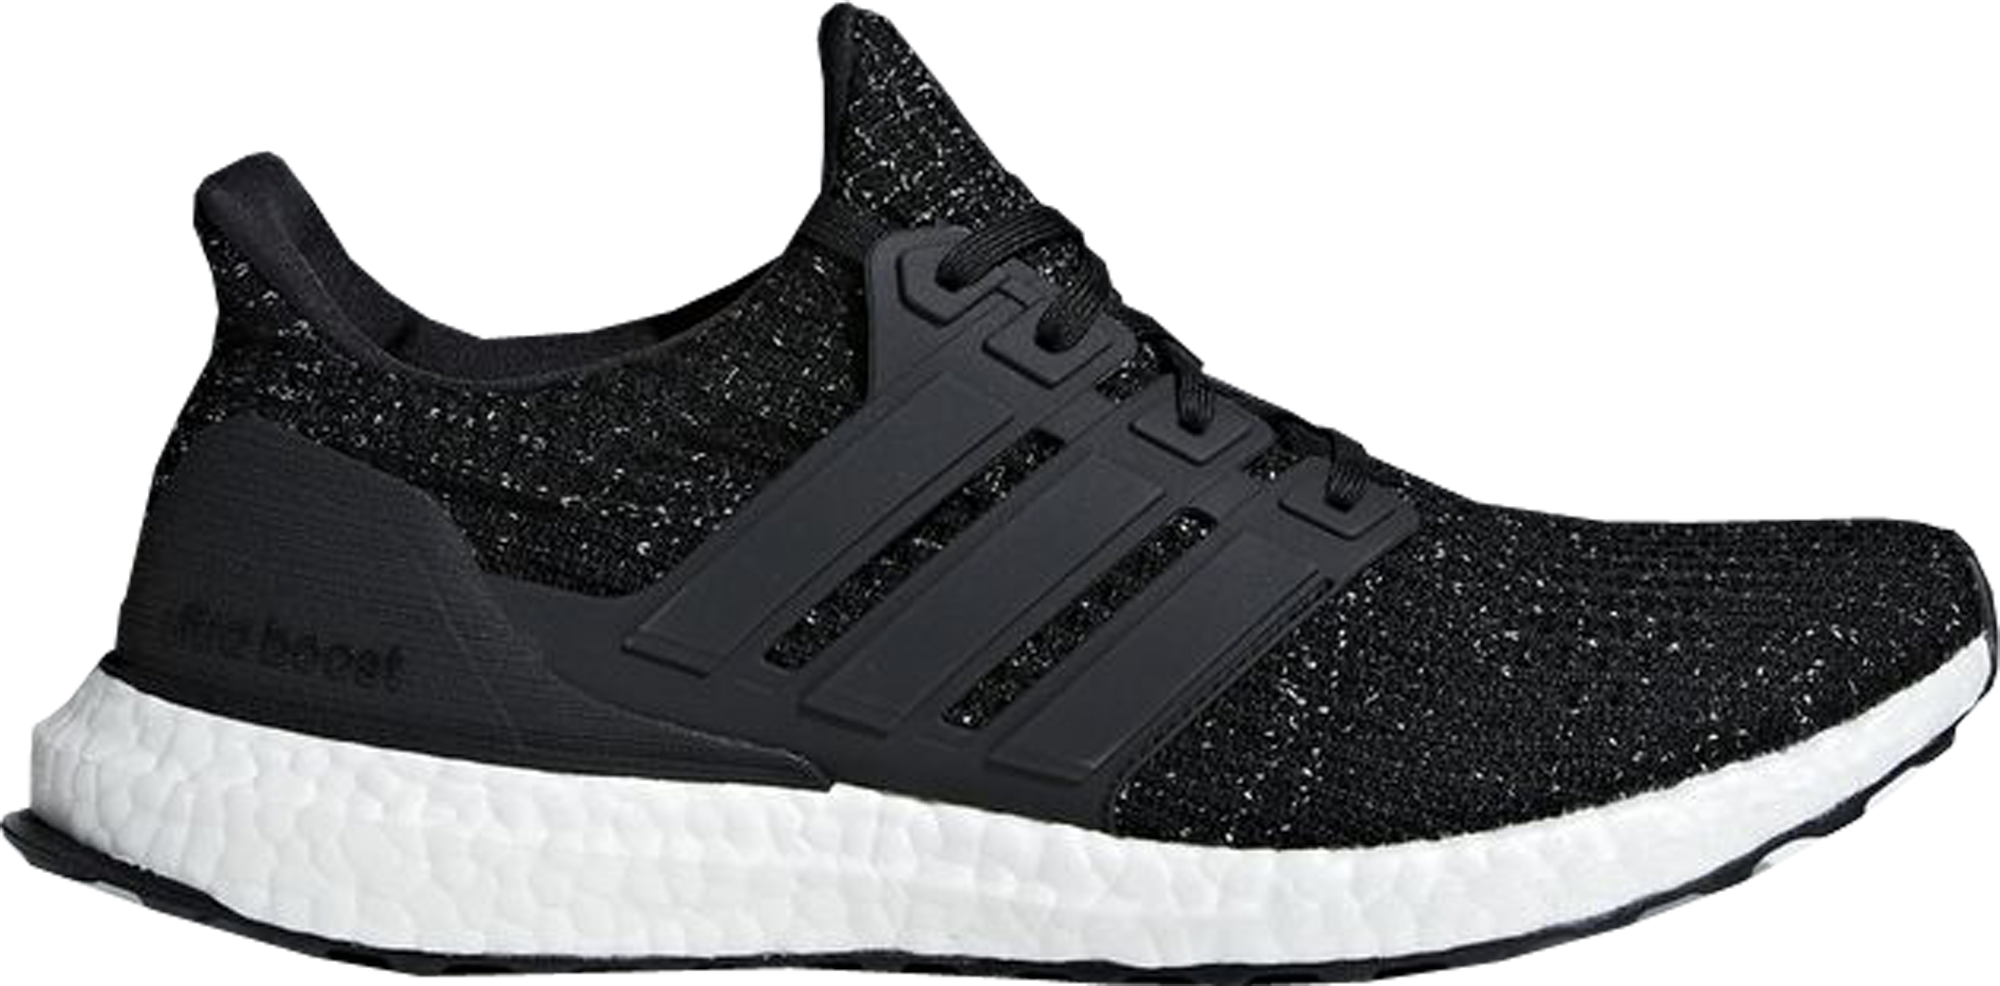 adidas Ultra Boost 4.0 Black White Speckle